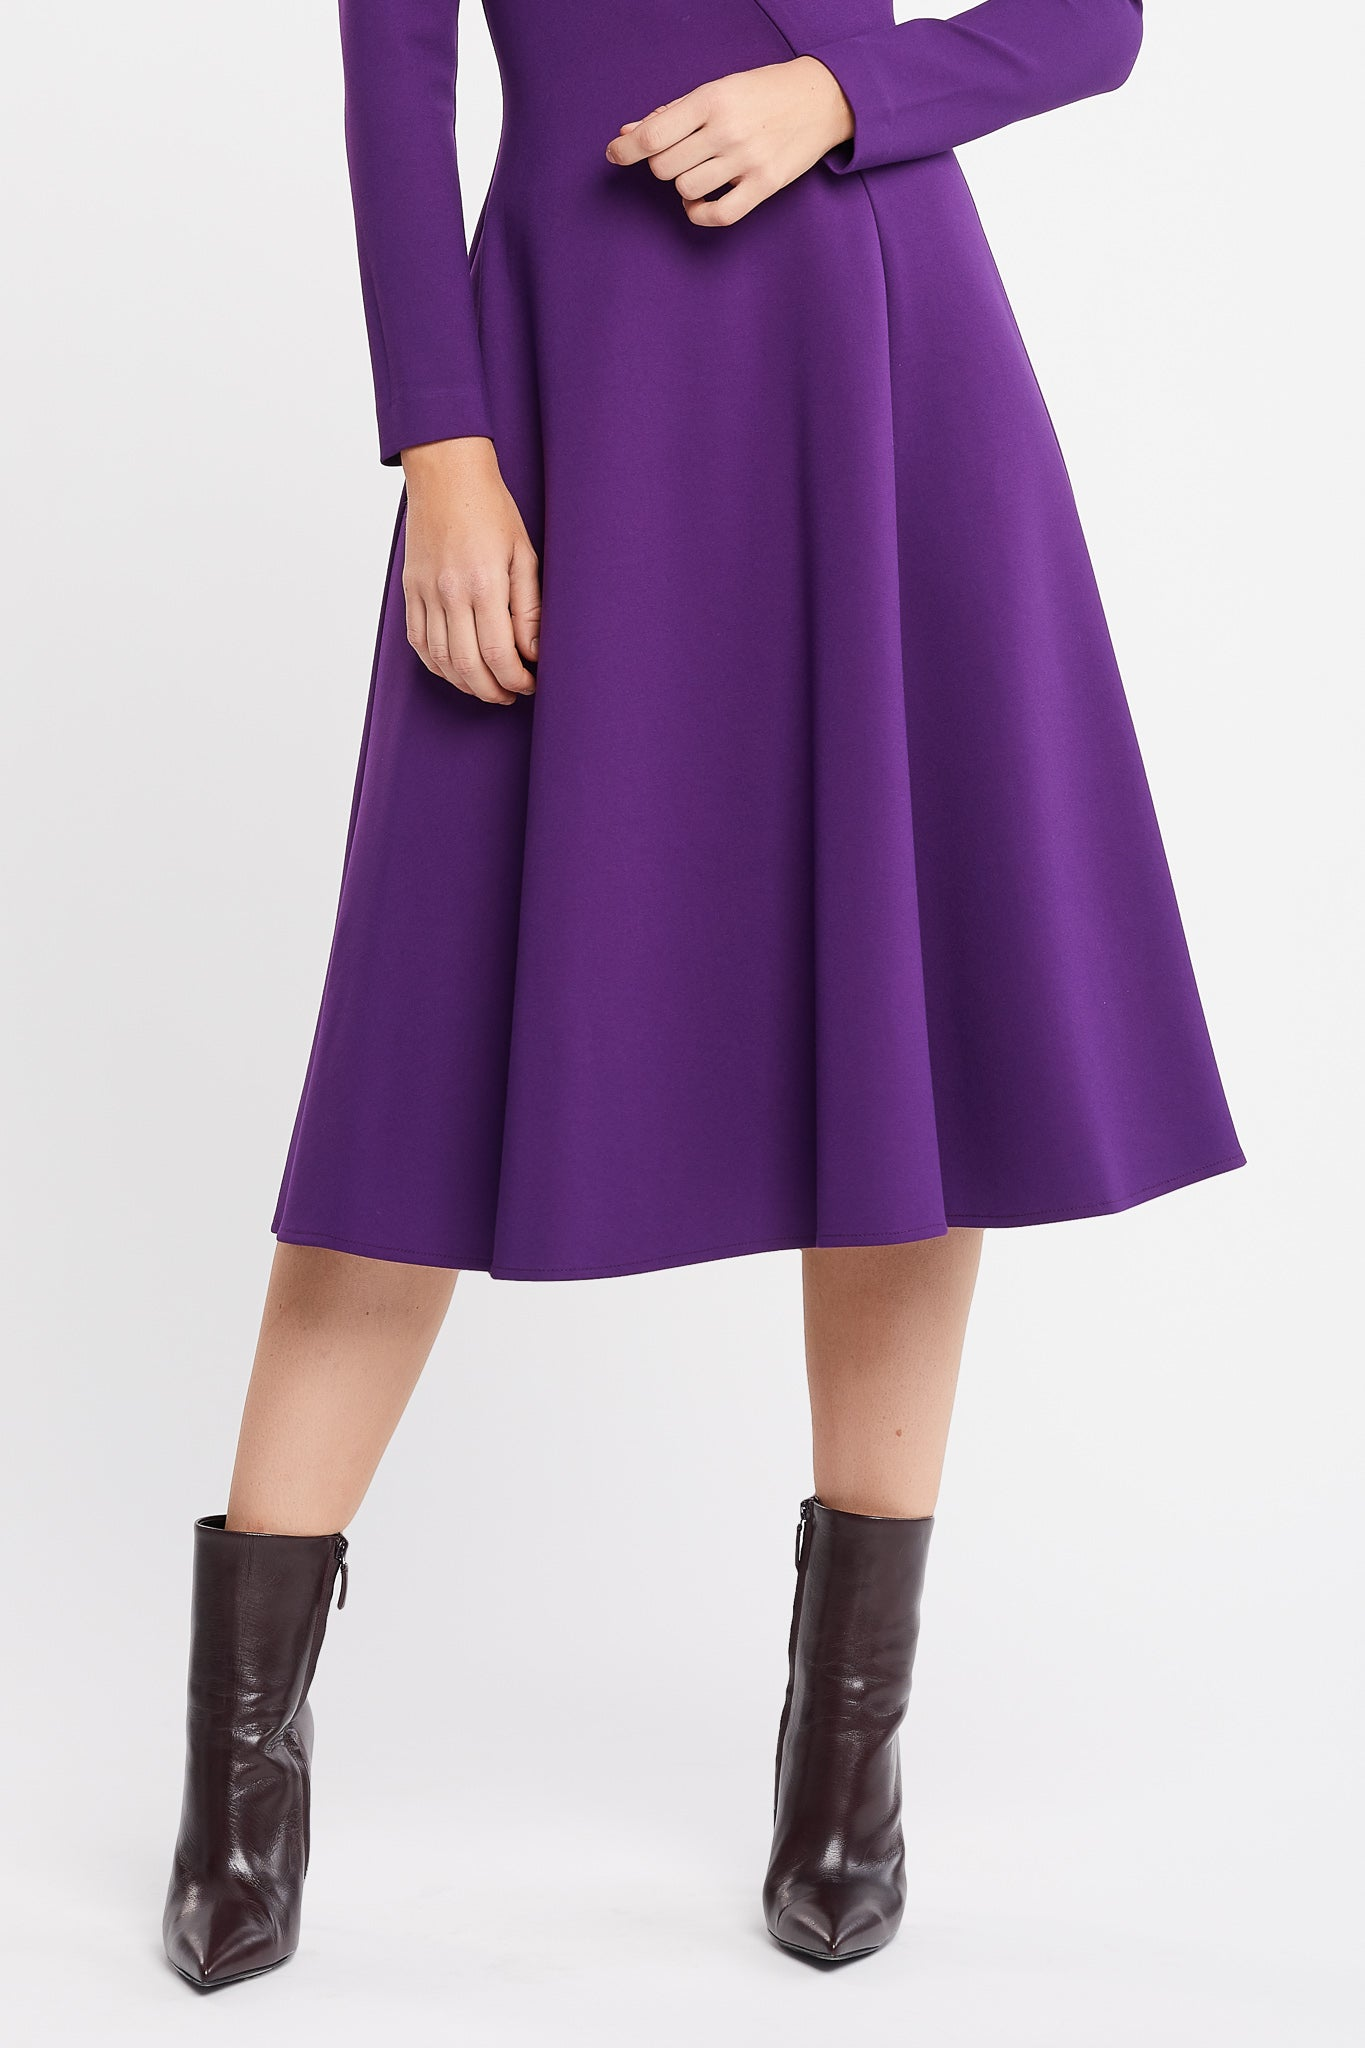 Faffa Long Sleeve Flared Purple Grey Work Dress